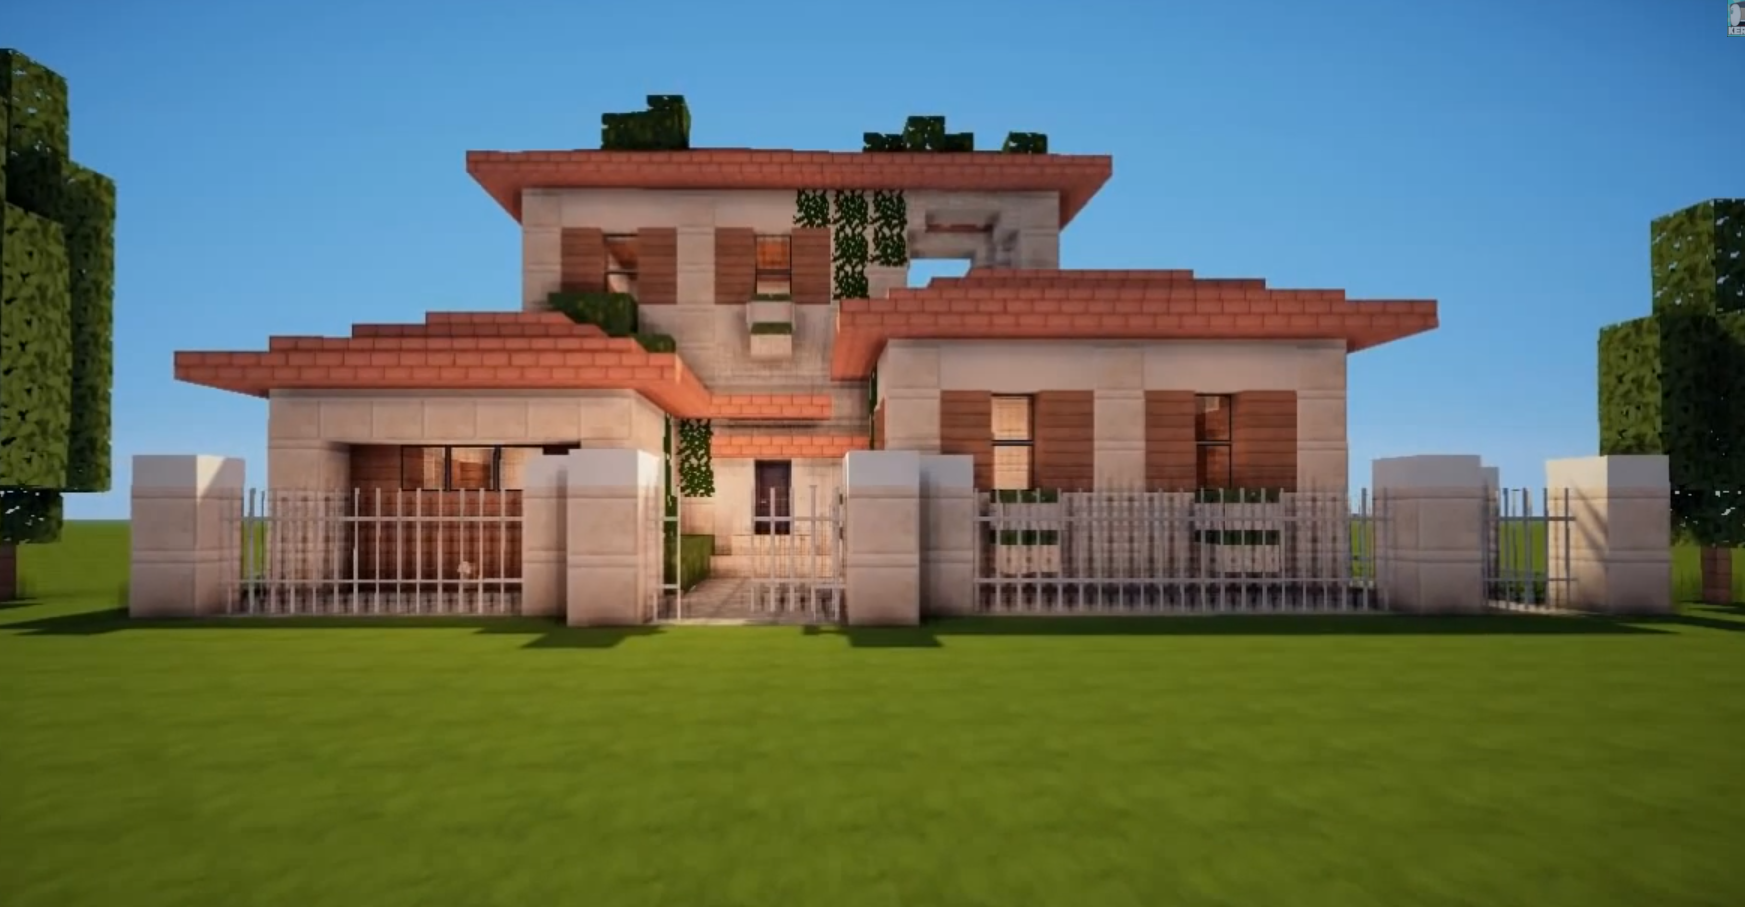 Pin by 😒 🏿 on Mincraft in 2020 | Easy minecraft houses ...